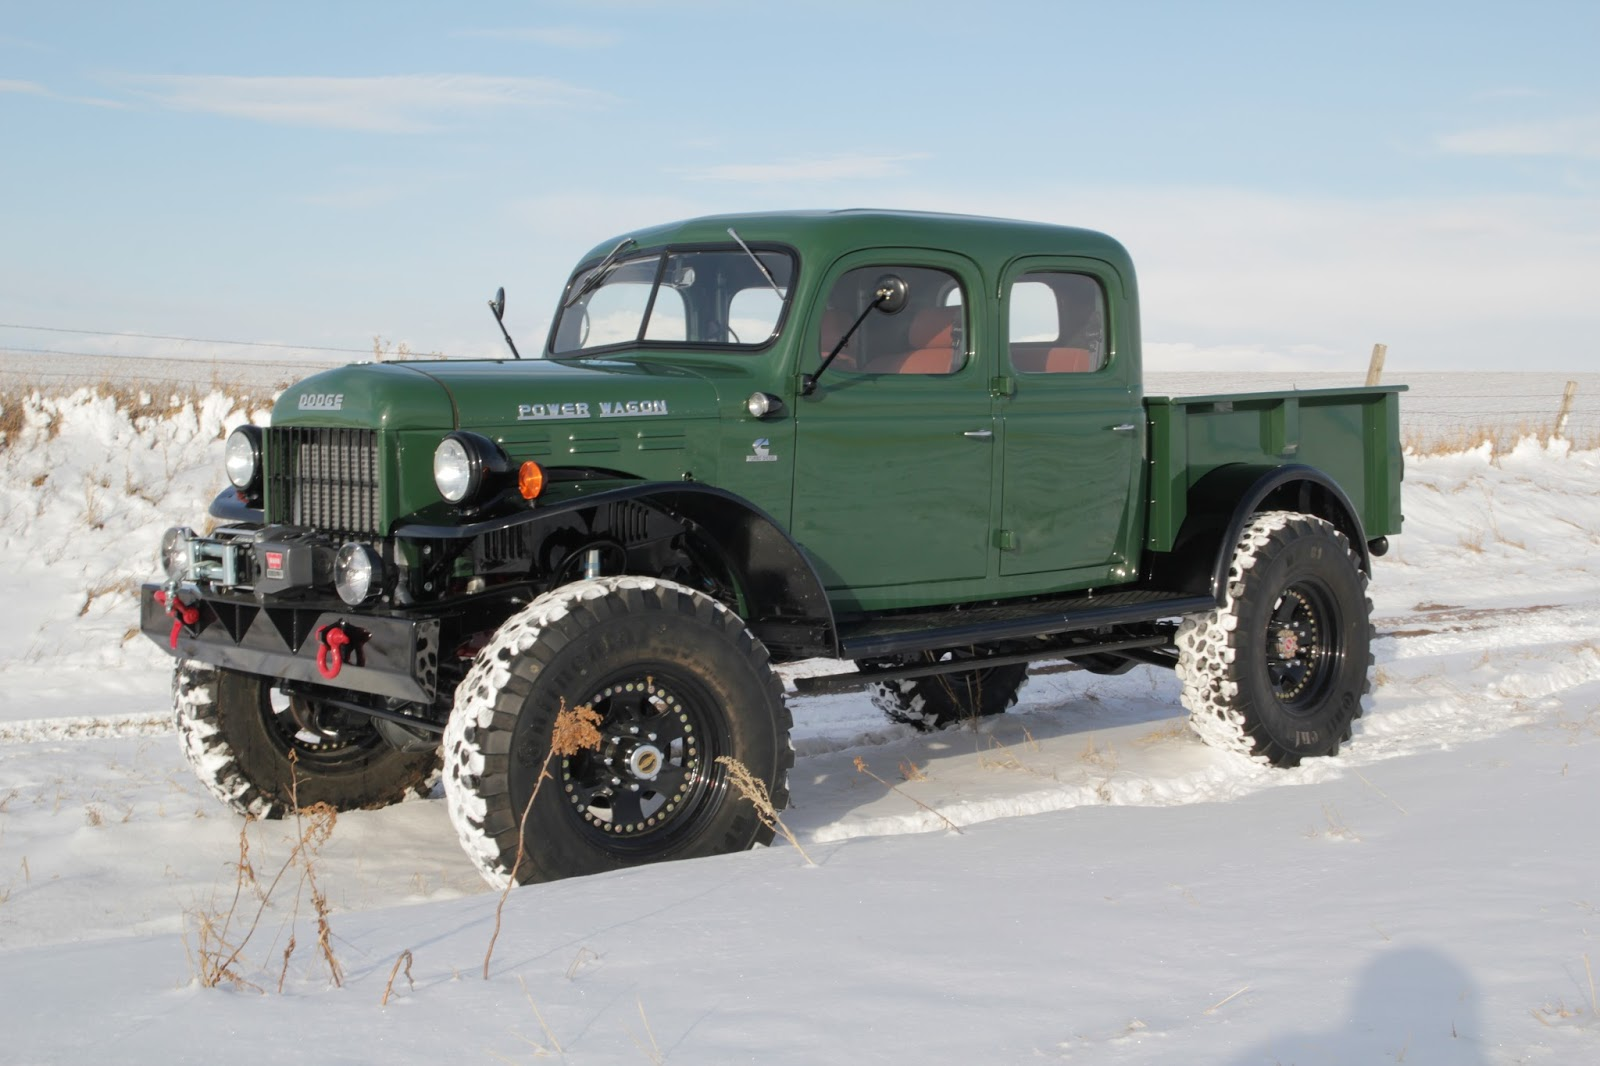 328481 together with  together with Misskmathwiki wikispaces together with Legacy Chevrolet Napco 4x4 Conversion Review also 1106055 legacy Classic Trucks Returns With 1950s Chevy Napco 4x4. on legacy classic power wagon